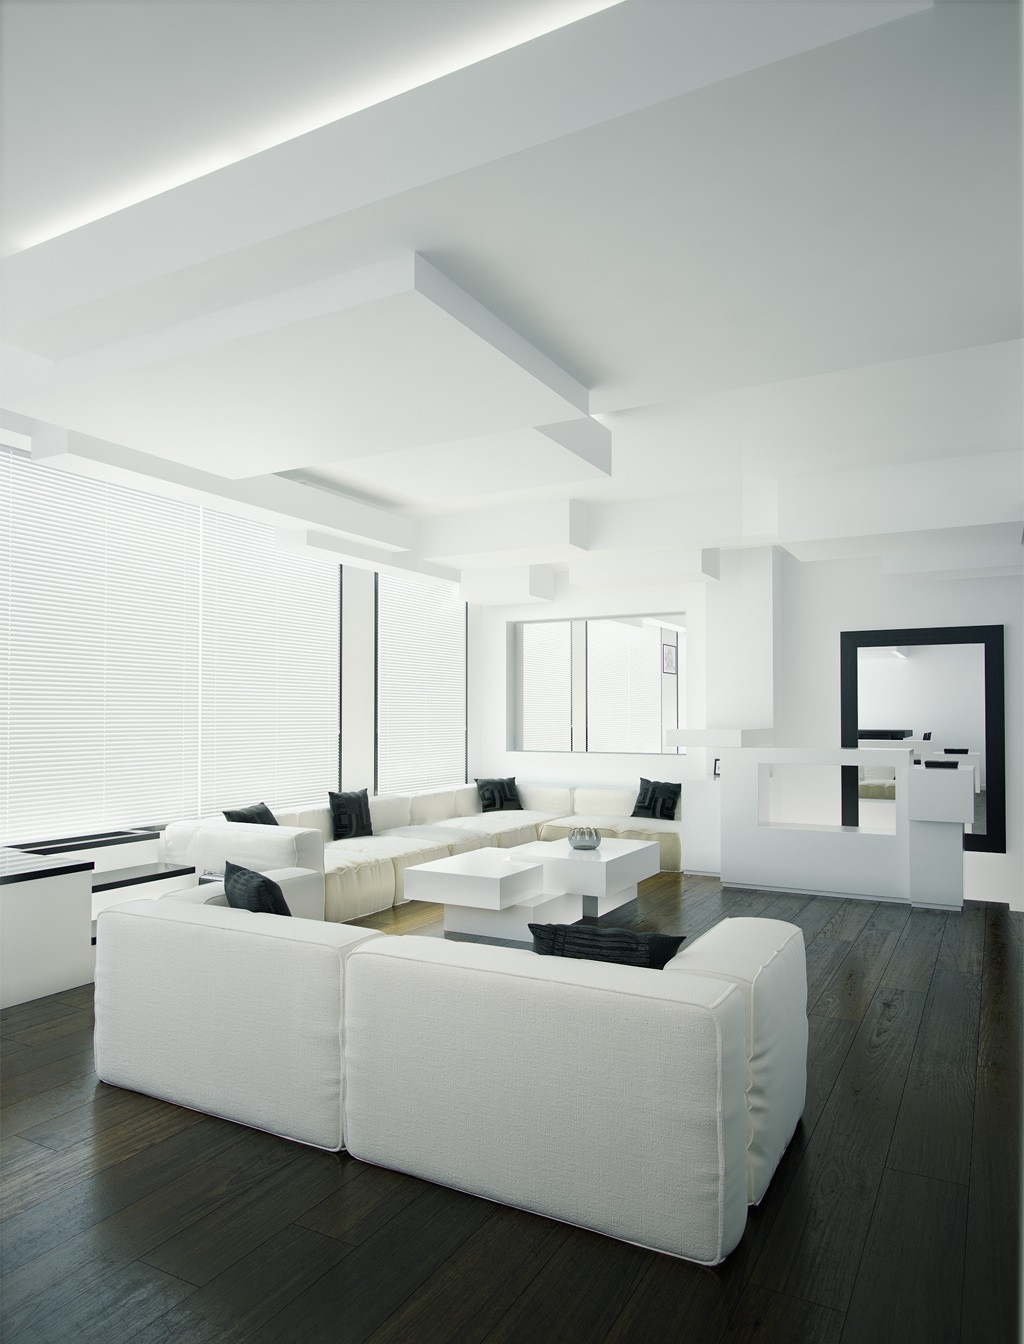 Black And White Pictures For Living Room Ideas At The House Black And White Living Room Interior